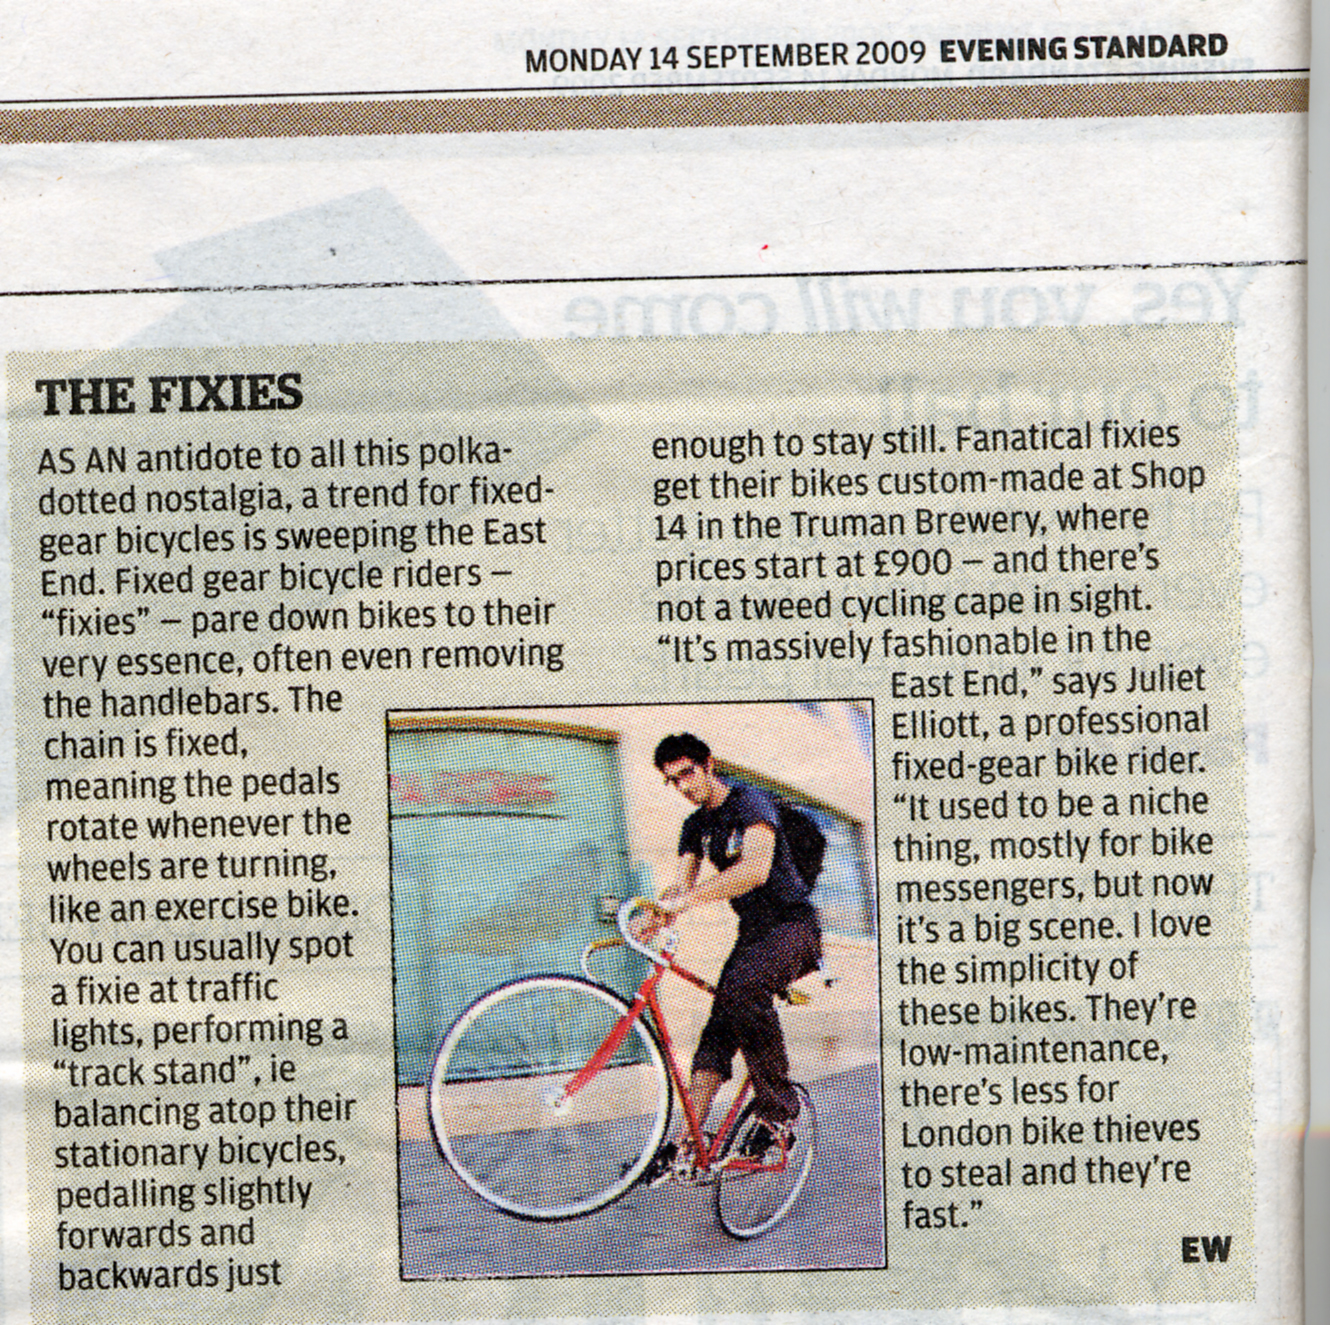 evening standard 14th sept 09